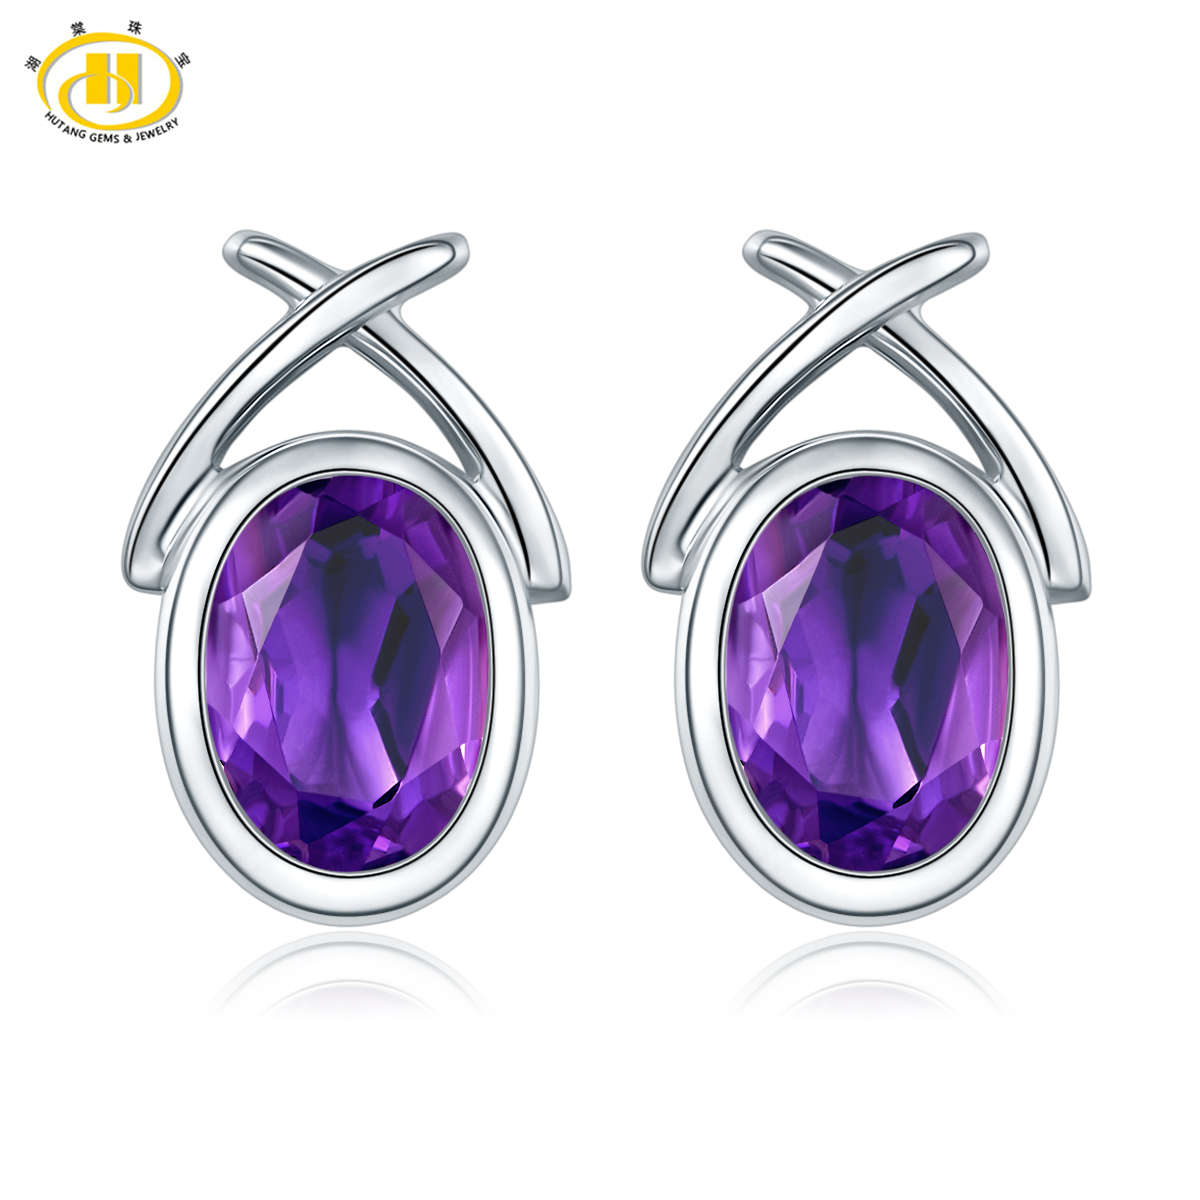 Hutang Classic Oval 7x5mm Natural Amethyst Stud Earrings Solid 925 Sterling Silver Purple Gemstone Fine Jewelry for Women Gift